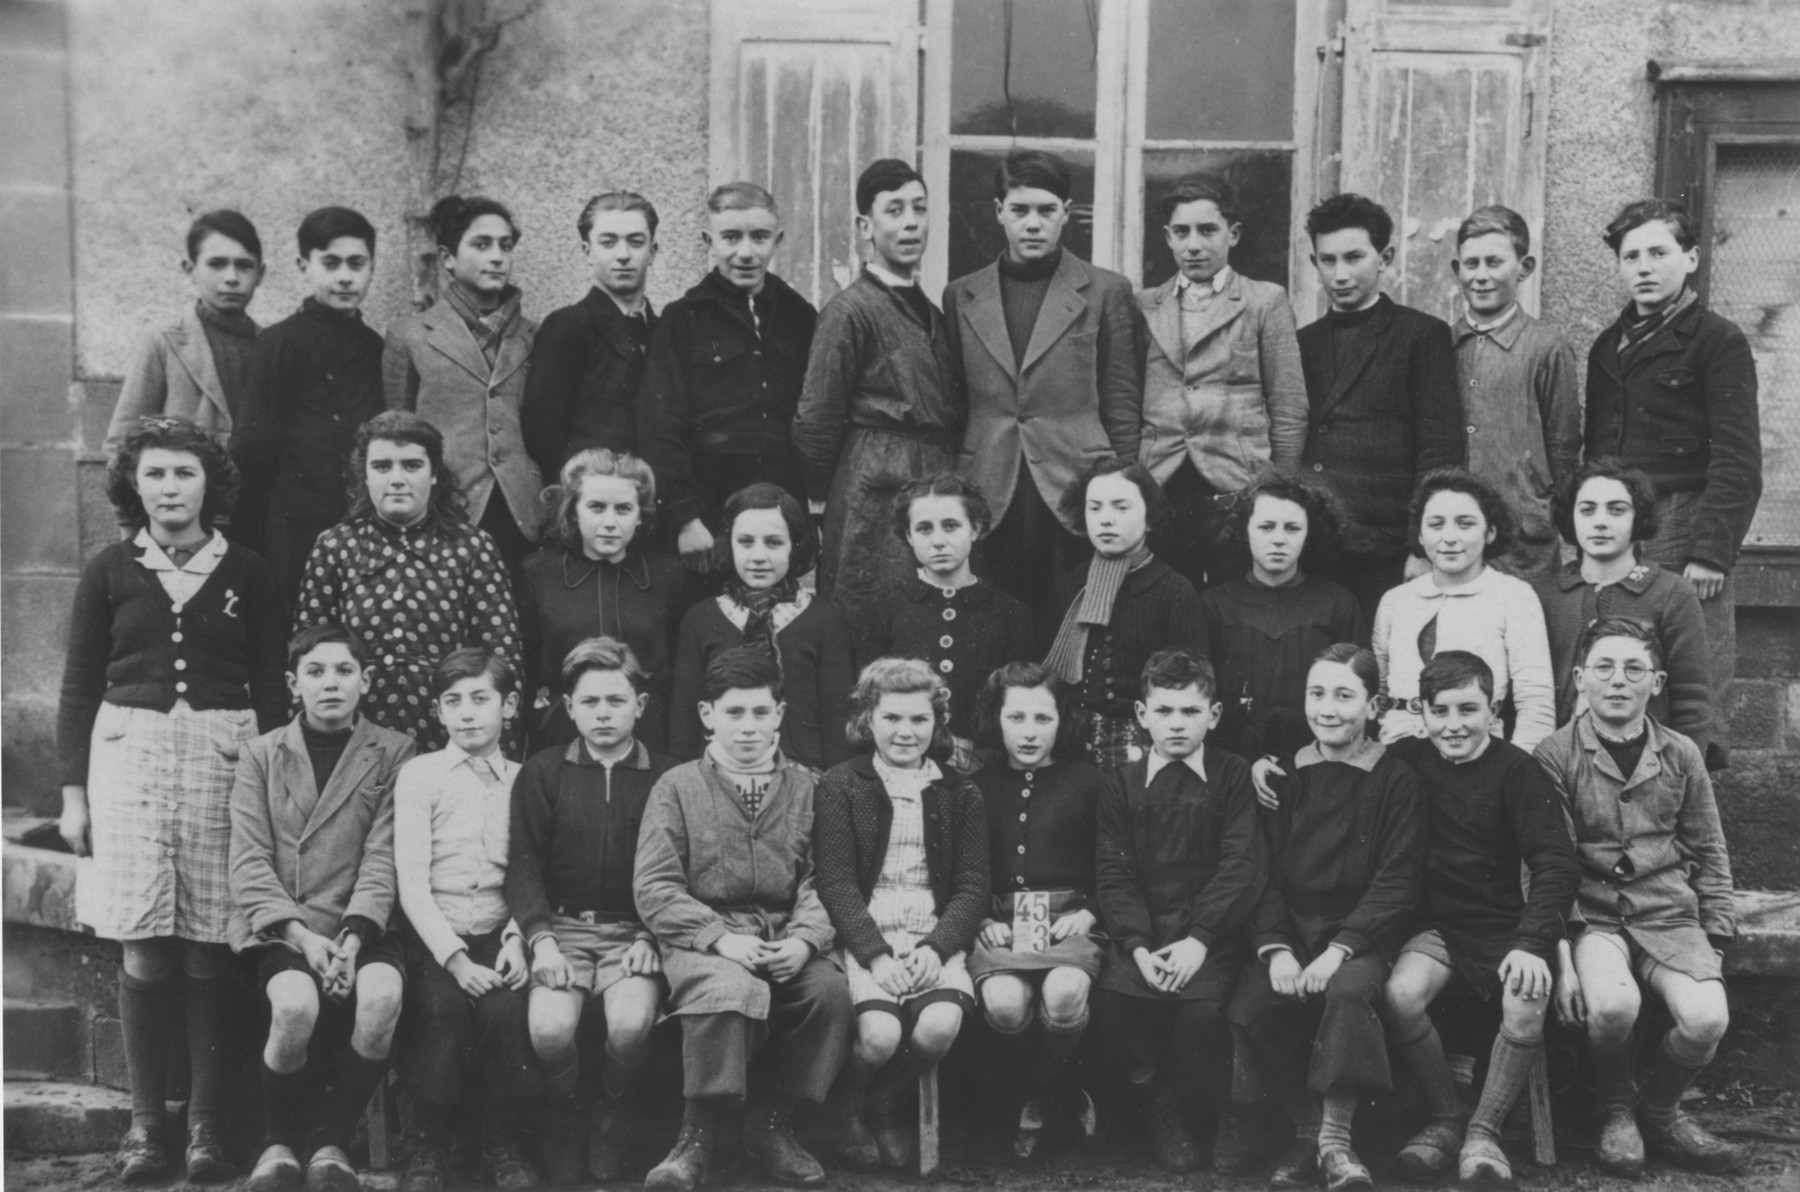 Class portrait of students at the Ecole Saint Pierre de Fursac, a school attended by Jewish refugee children living at the Chabannes children's home, as well as those from the village.   Pictured in the front row, from left to right are: unknown; Pierre Lafaye; Jo Jacob; unknown; Renaud; Andre Dubois; unknown; Margot Weinberg; Plavinet; Andre Lelong; Kostia Sotnikov.  Second row: Paulette Leblanc; Marcelle Fedon; unknown; Grosset; Irene Clement; Jeanne Luguet; Paulette Legris; Gisele Brunetaud; Ginette Chanliat.  Third row: Mamet; Georges Loeffler; Norbert Bikales; Michel Razymovsky; Madeleine Boramier; Madeleine Basset; Anatole Zylberstein; unknown; unknown; unknown.